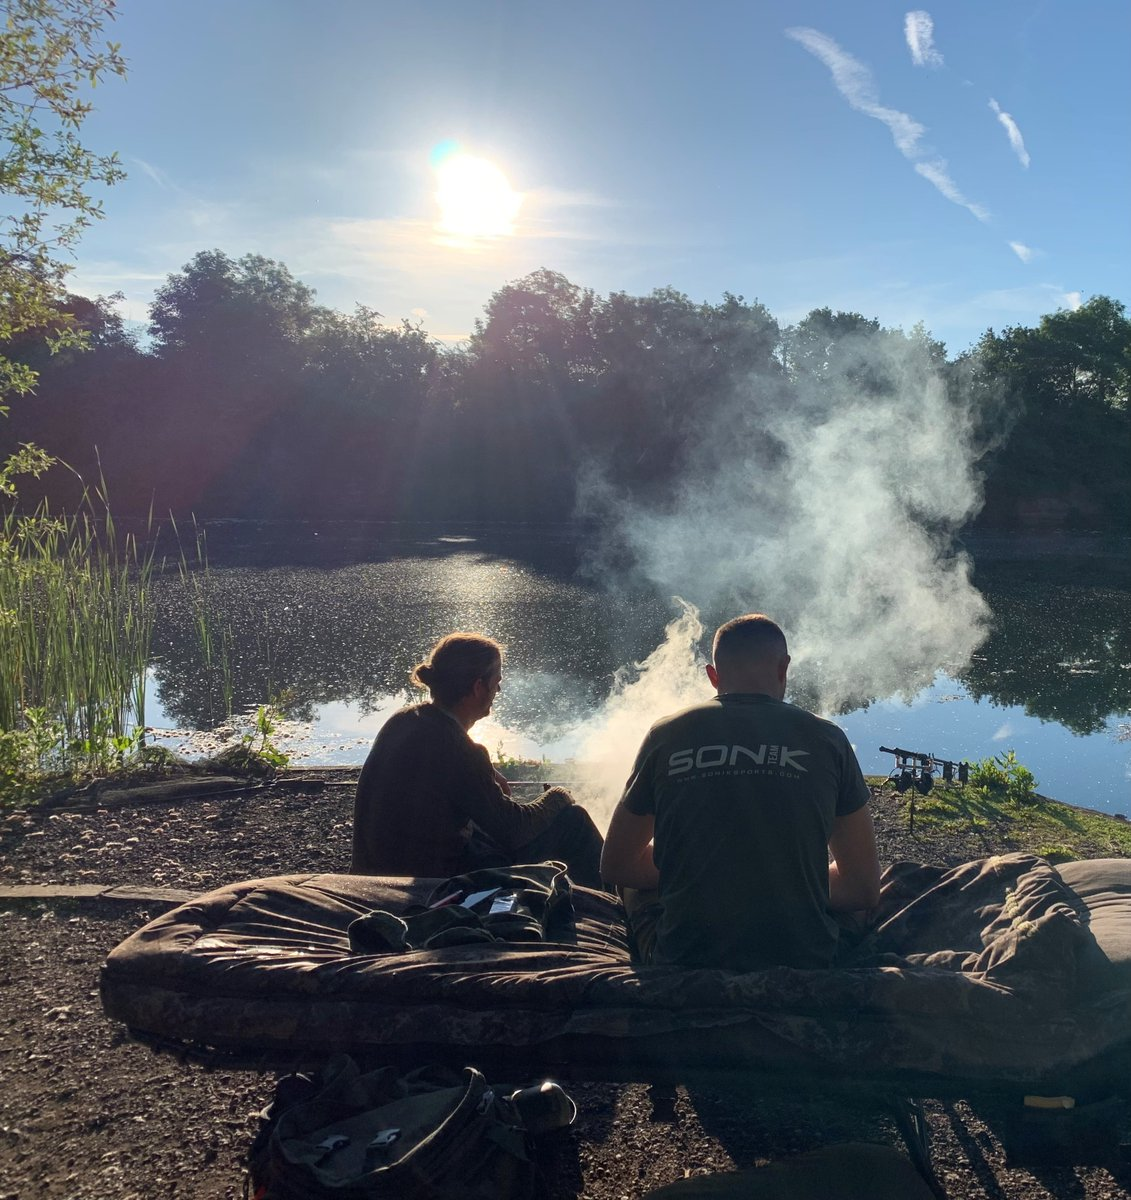 How's your <b>Weekend</b> going... rods out, kettle on we hope. #Carpy #Sonik #Carpfishing #Itsthe<b